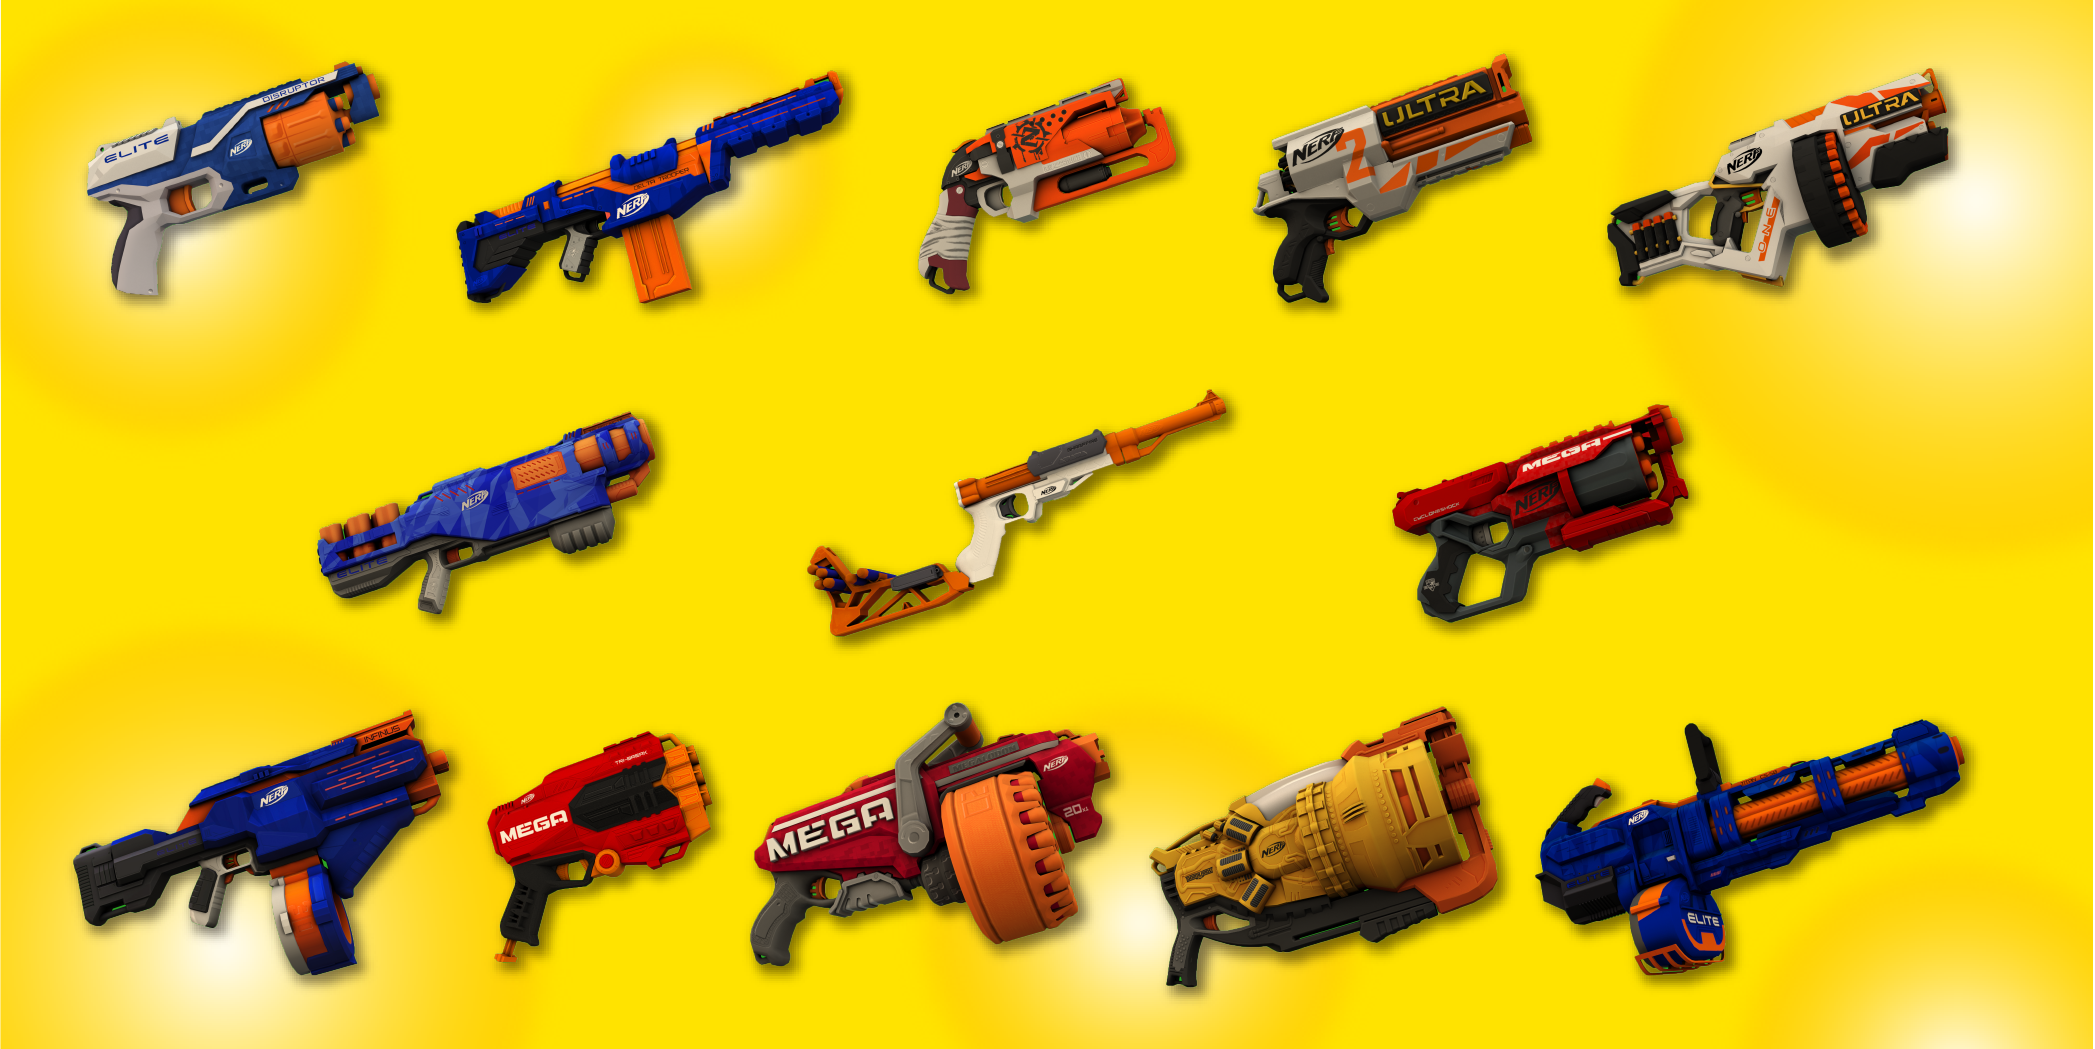 NERF blasters by Homa Games